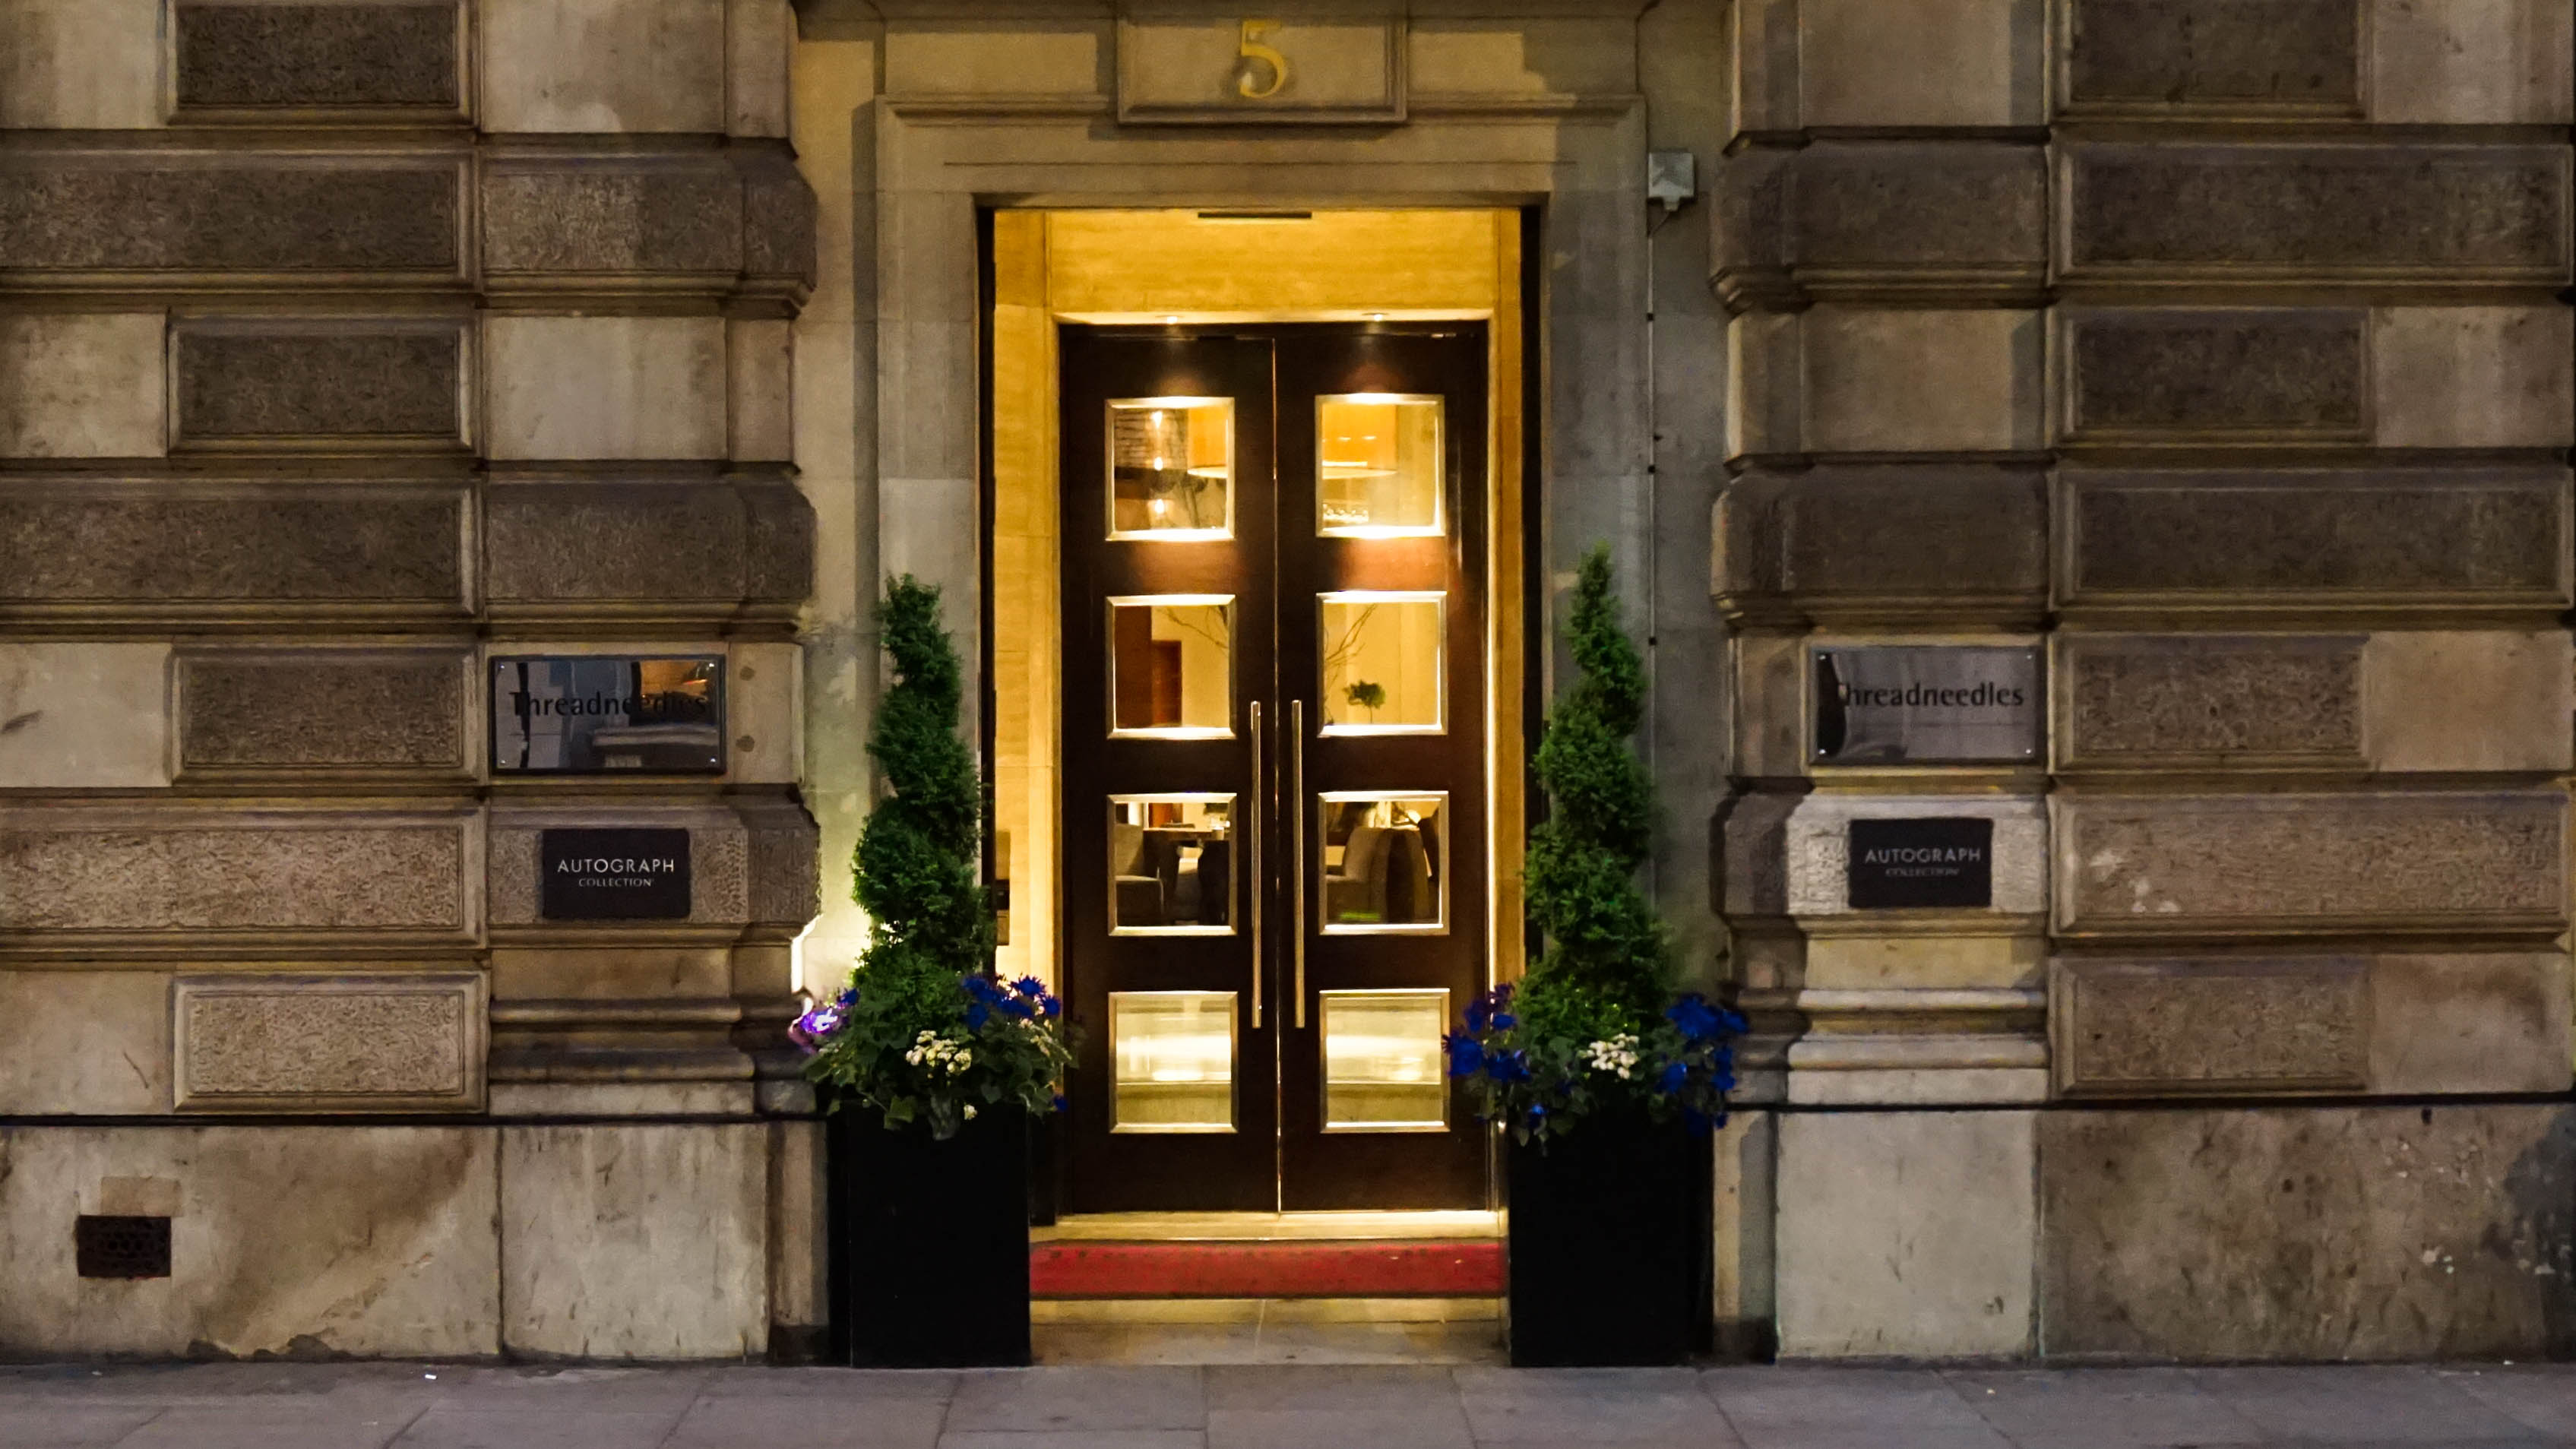 Ingang Threadneedles Hotel in Londen